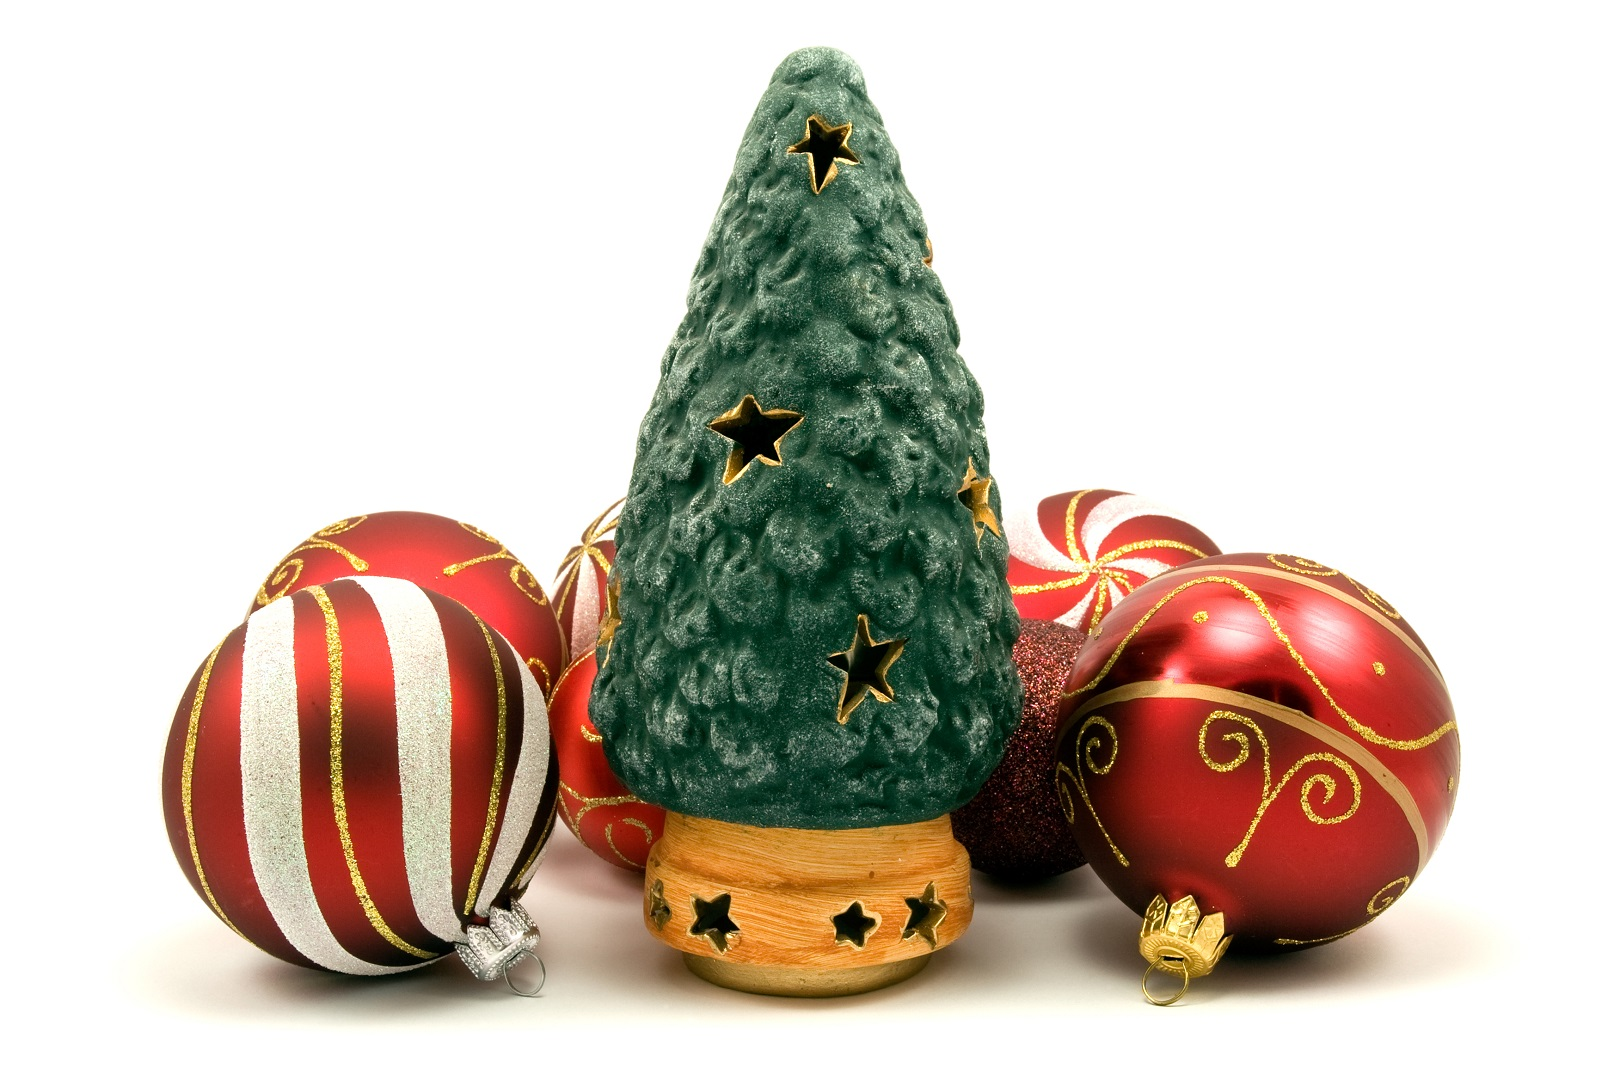 These Nostalgic Vintage Ceramic Christmas Trees Are Making a Comeback